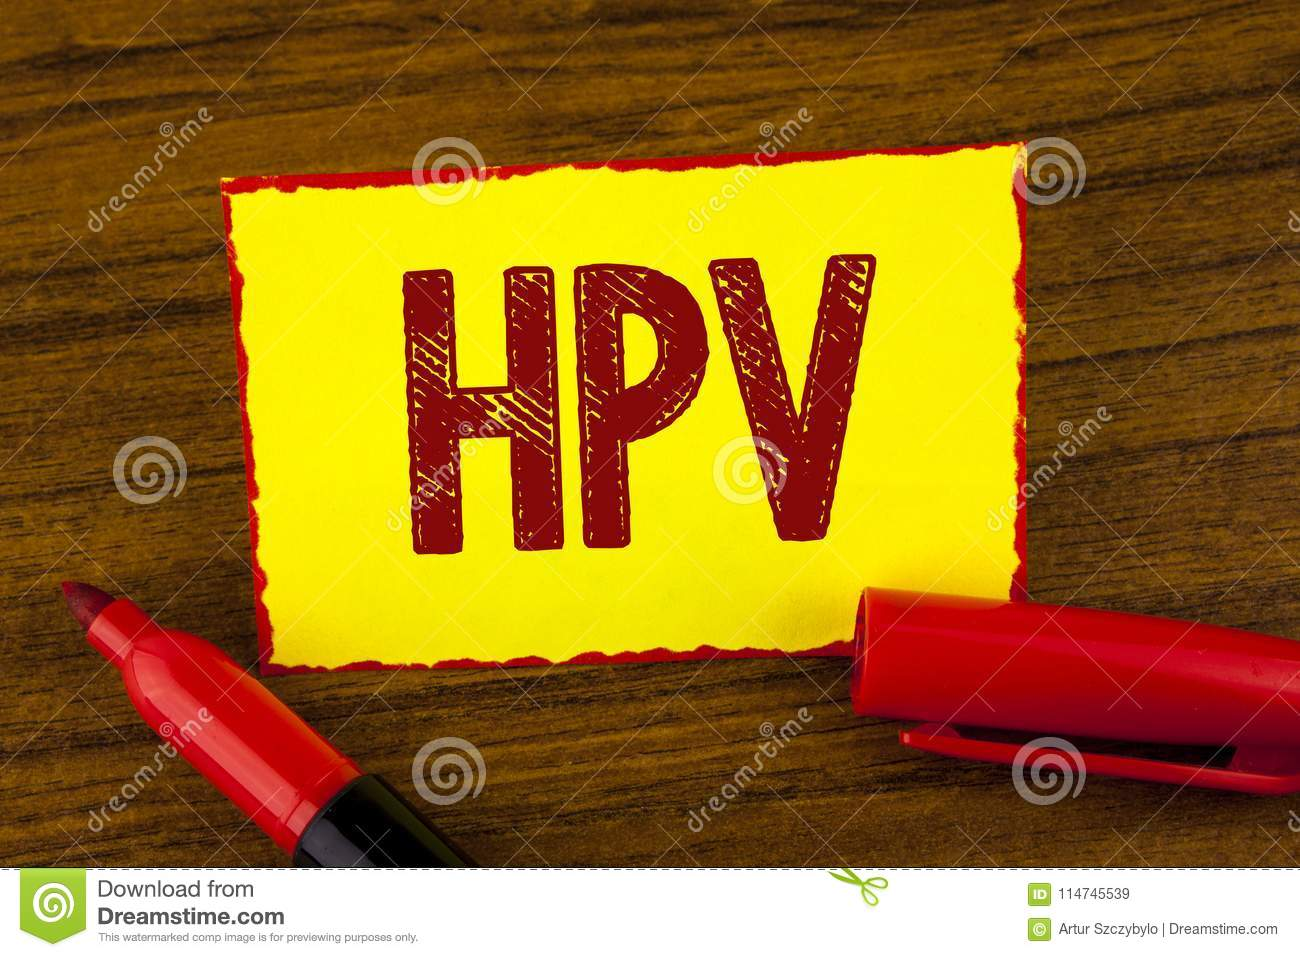 papilloma meaning of the word hpv vaccine side effects back pain